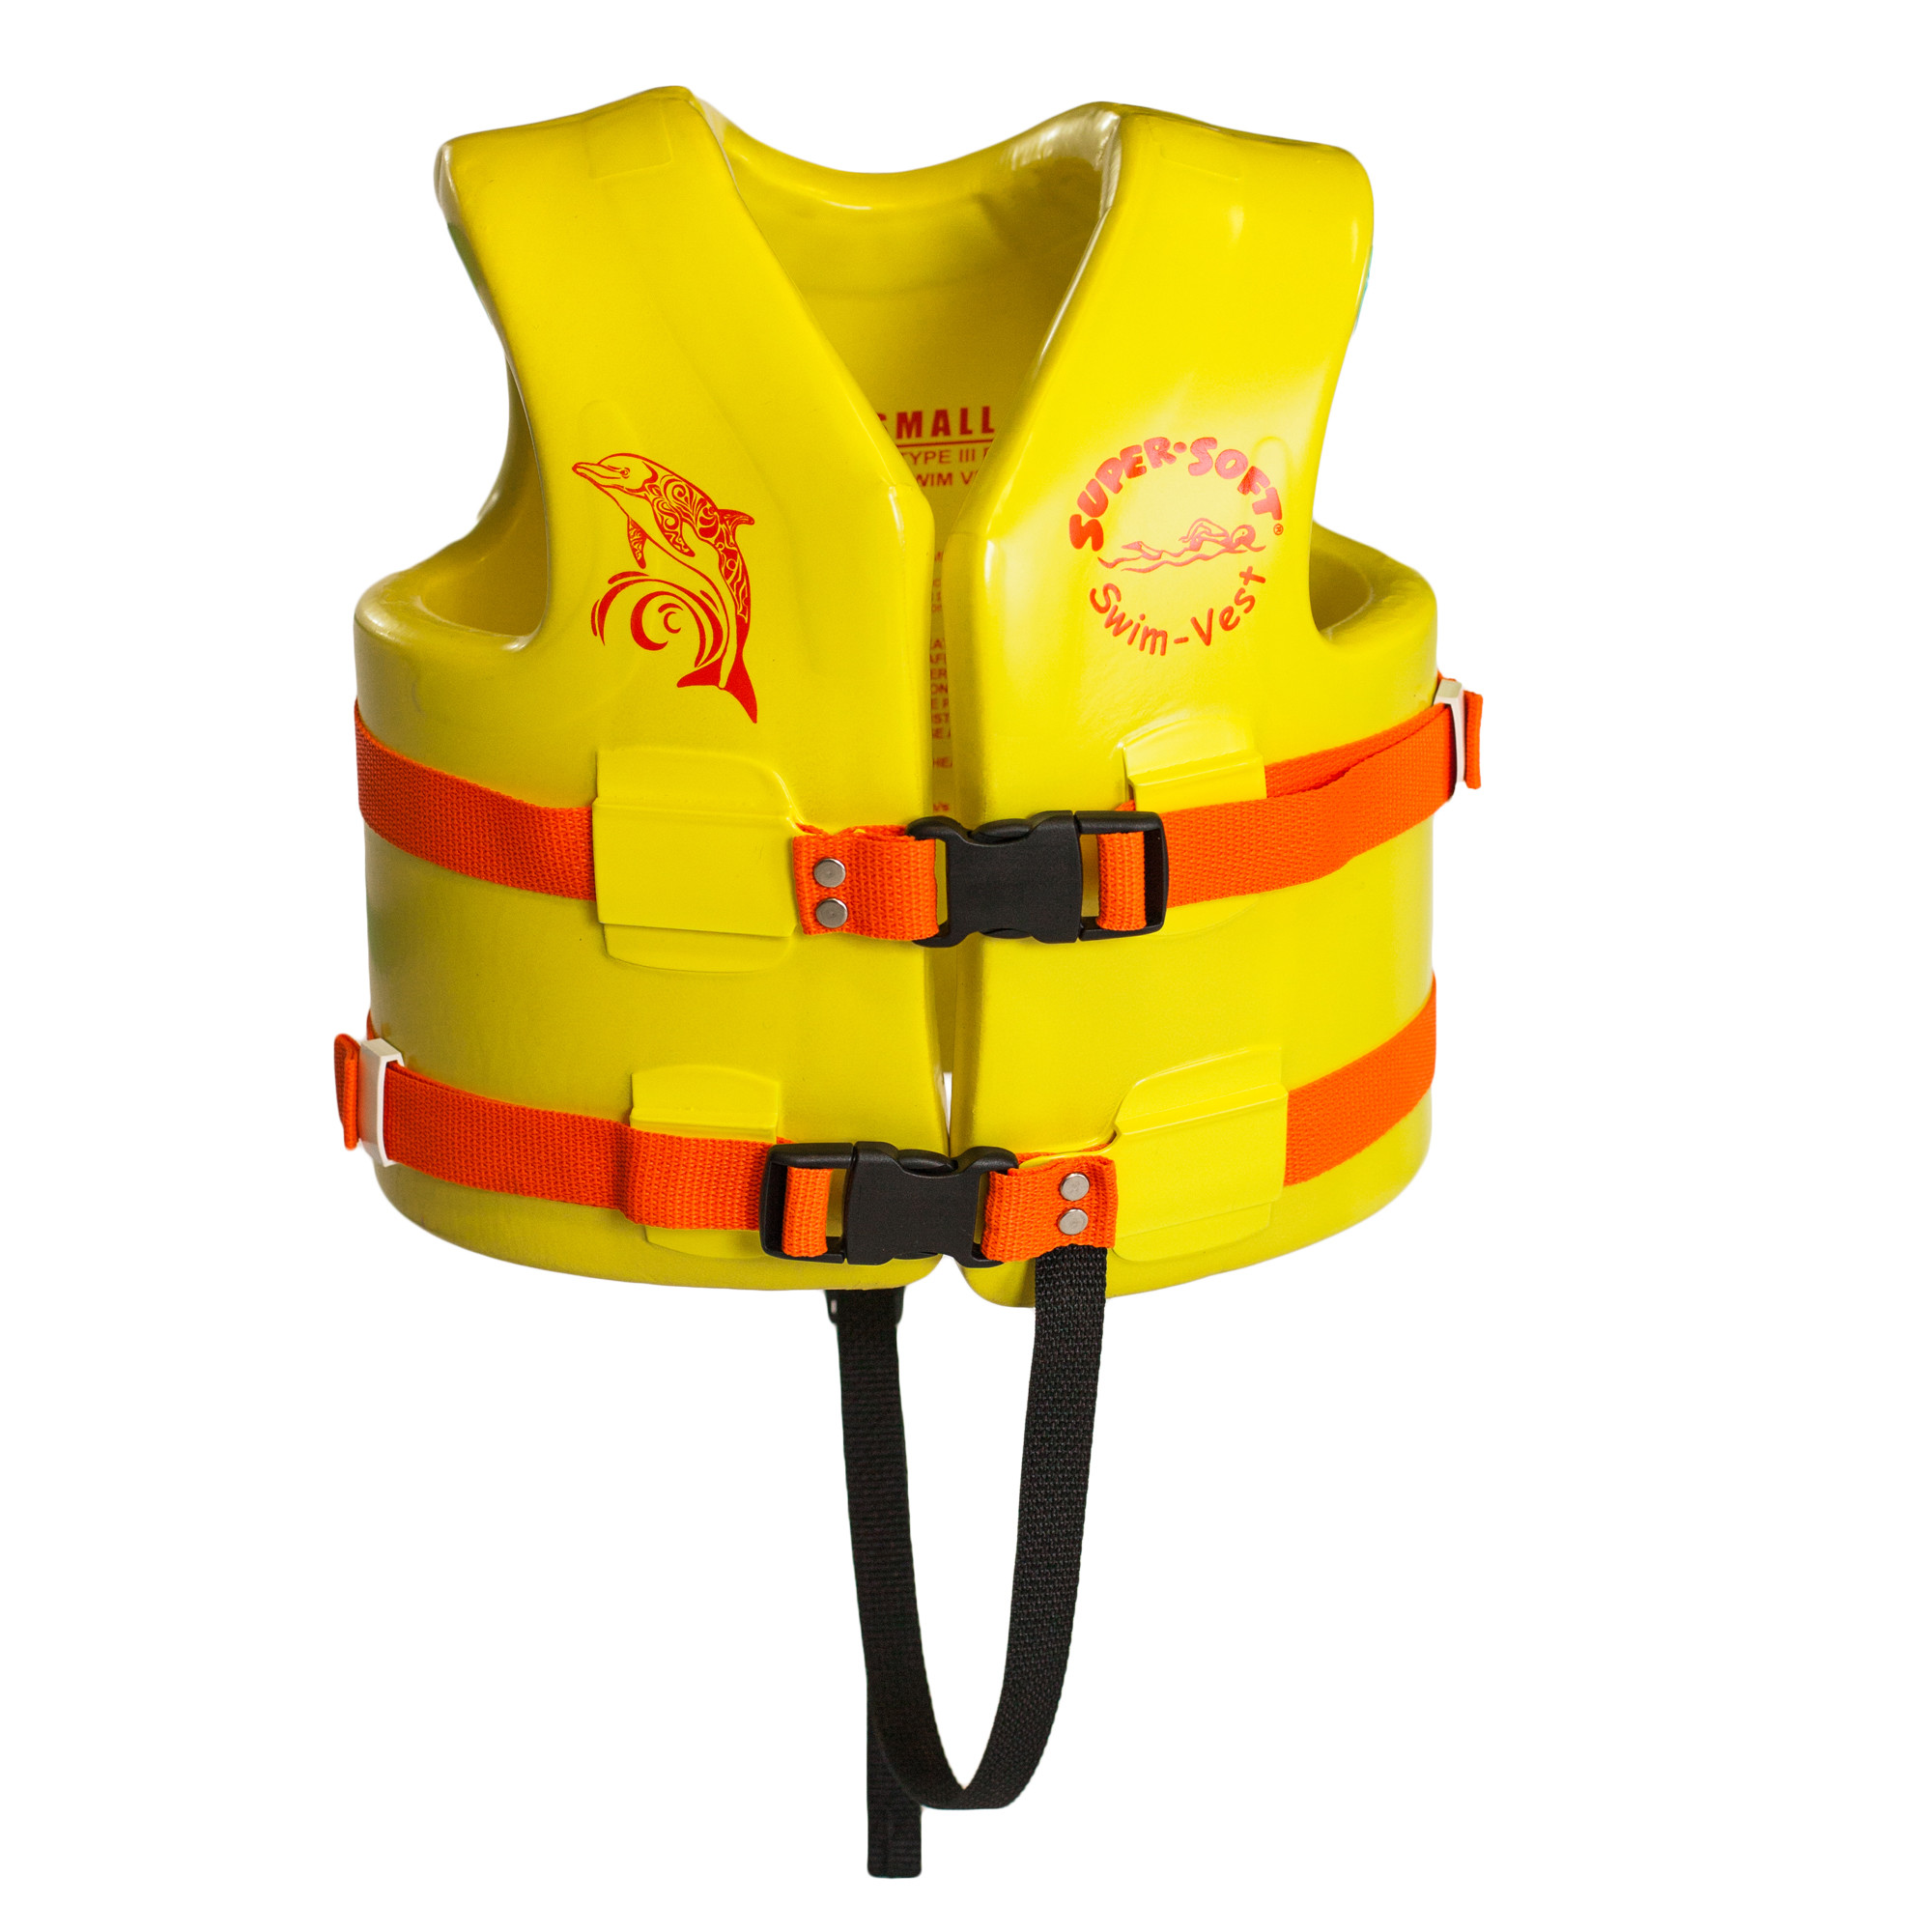 5bc3af34bc5 z0512-Super-soft-yellow-life-Jacket-small.jpg